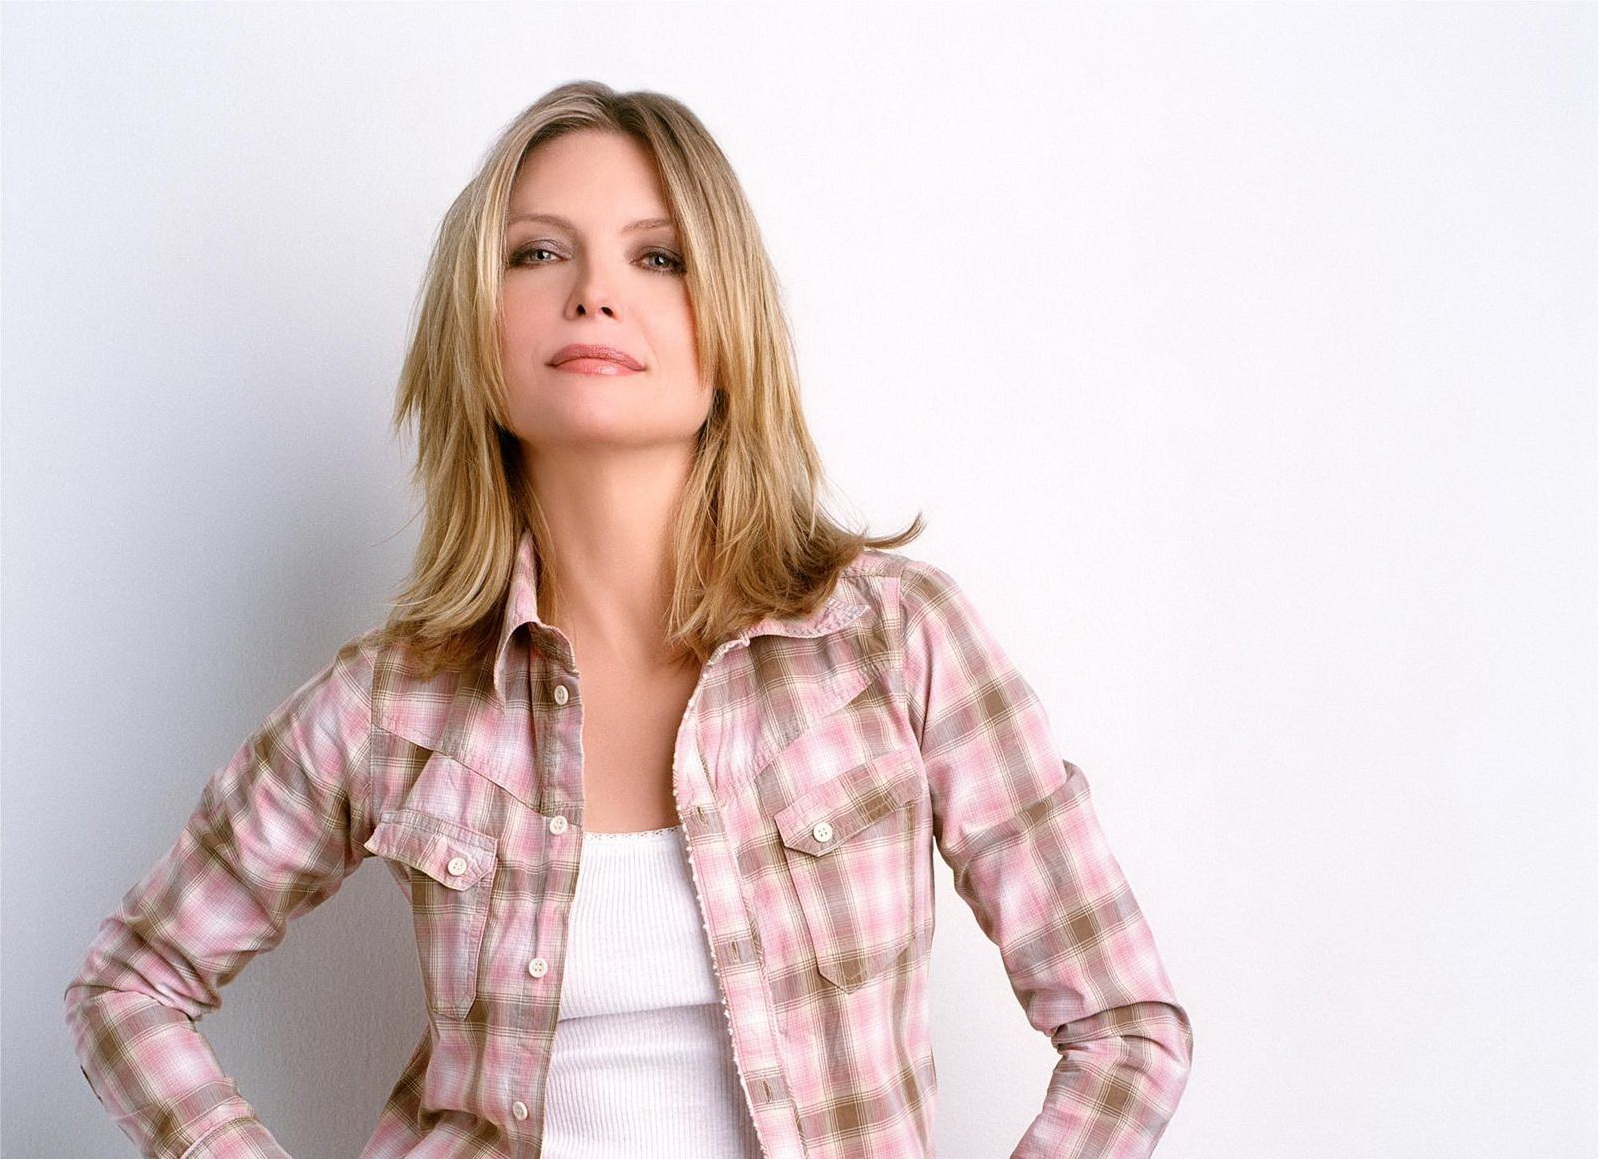 Michelle Pfeiffer hot hd wallpapers | HIGH RESOLUTION PICTURES K Michelle 2013 Photoshoot